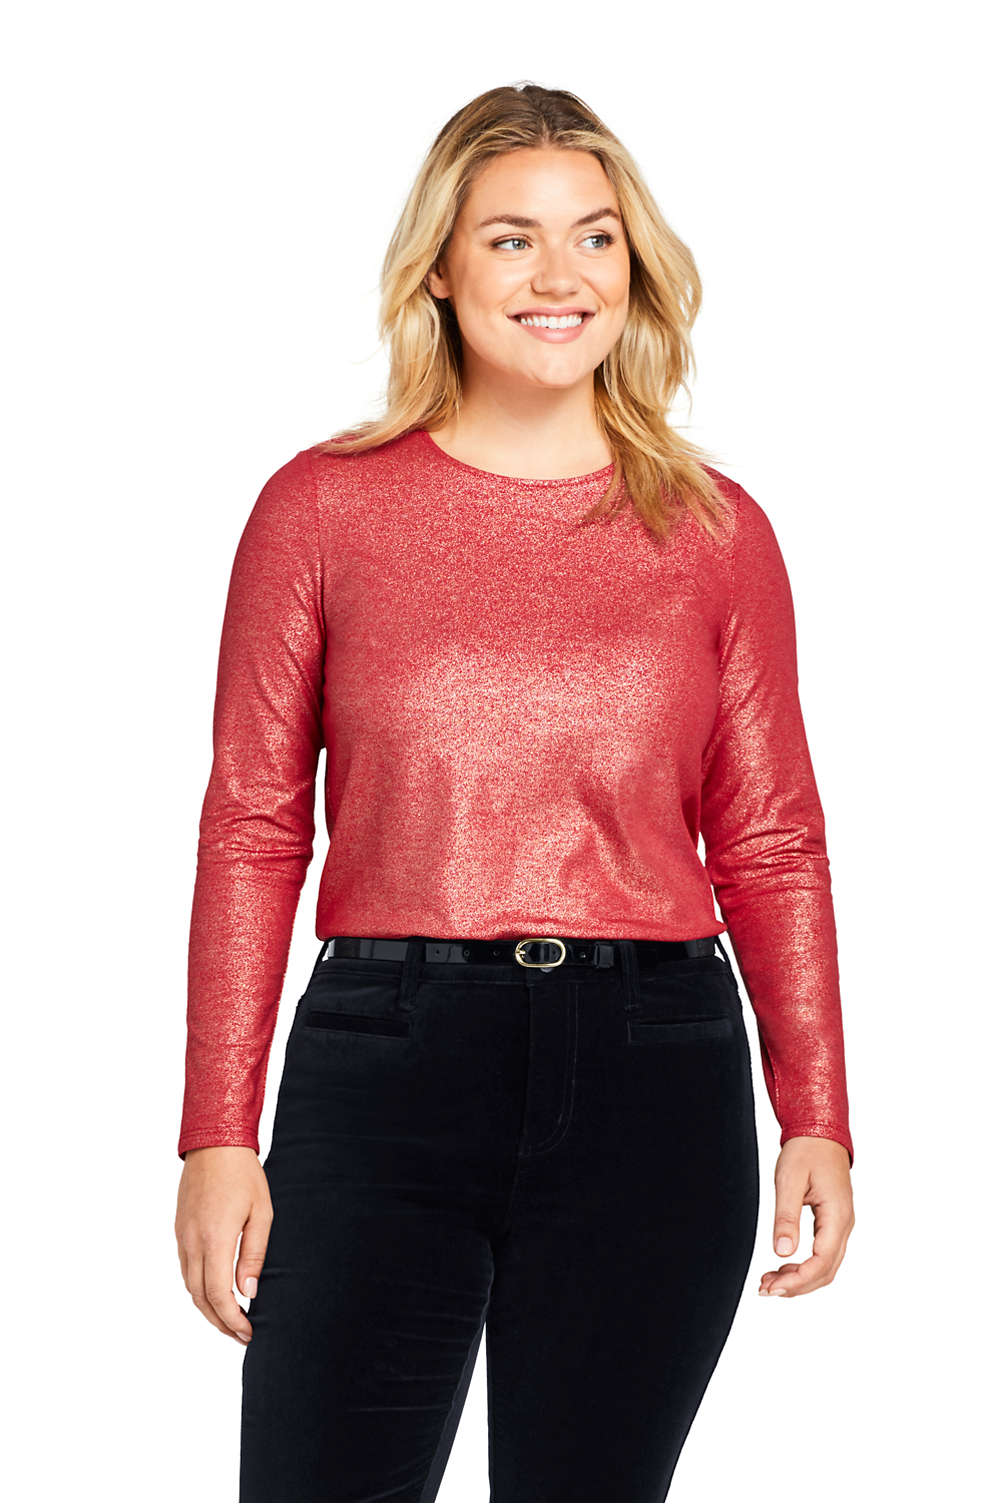 f2a018faa8120f Women s Plus Size Long Sleeve Christmas T-shirt Metallic Foil from Lands   End